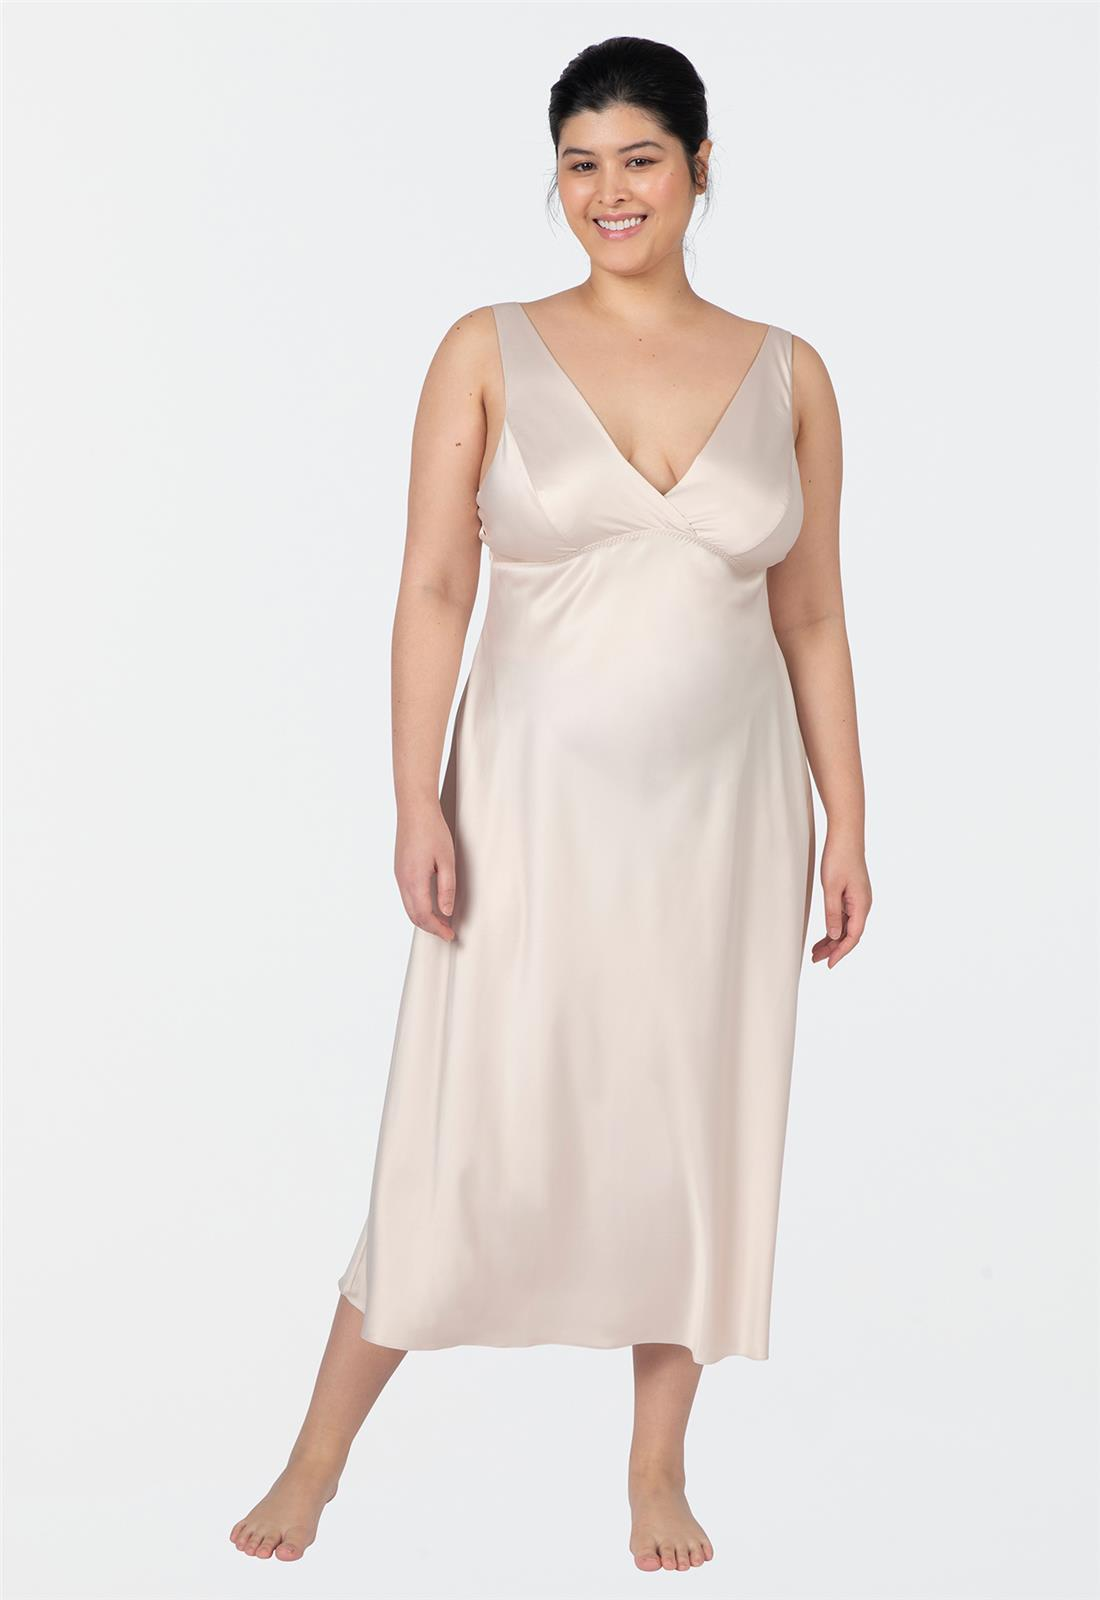 Positivity Gown Champagne